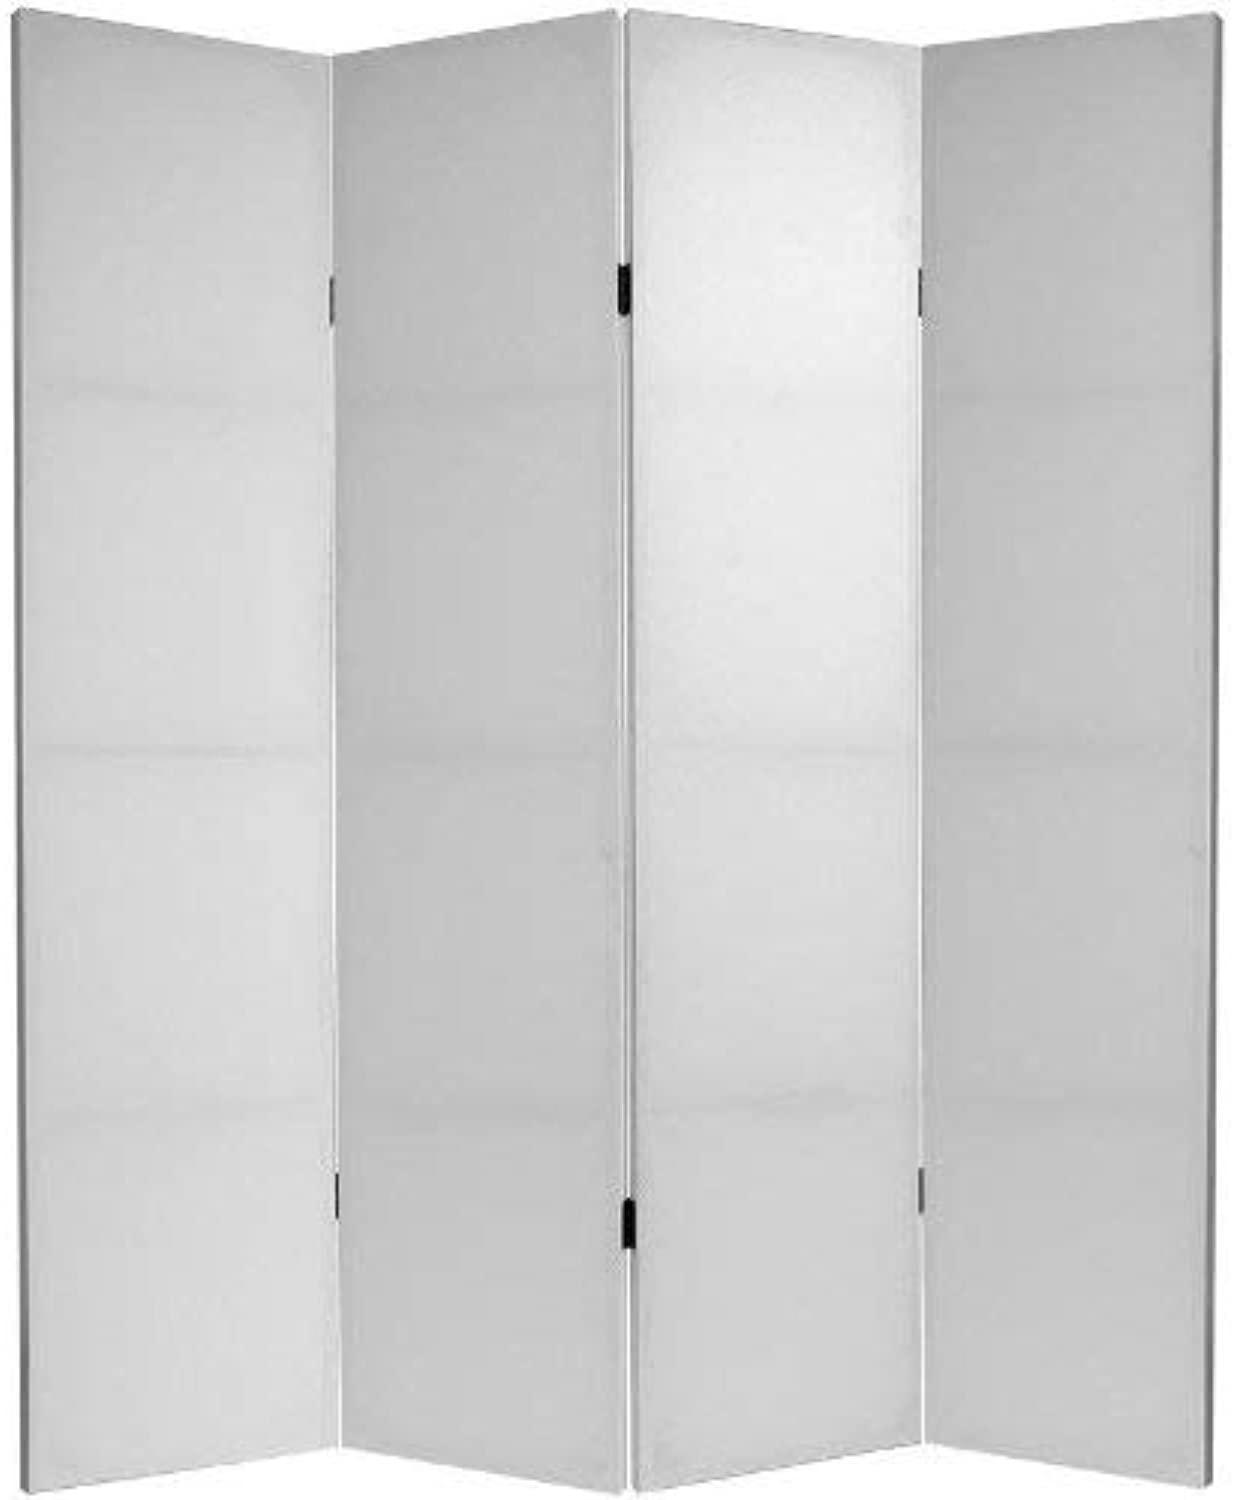 Oriental Furniture 6-Feet Tall Do It Yourself Canvas Room Divider 4 Panel, B